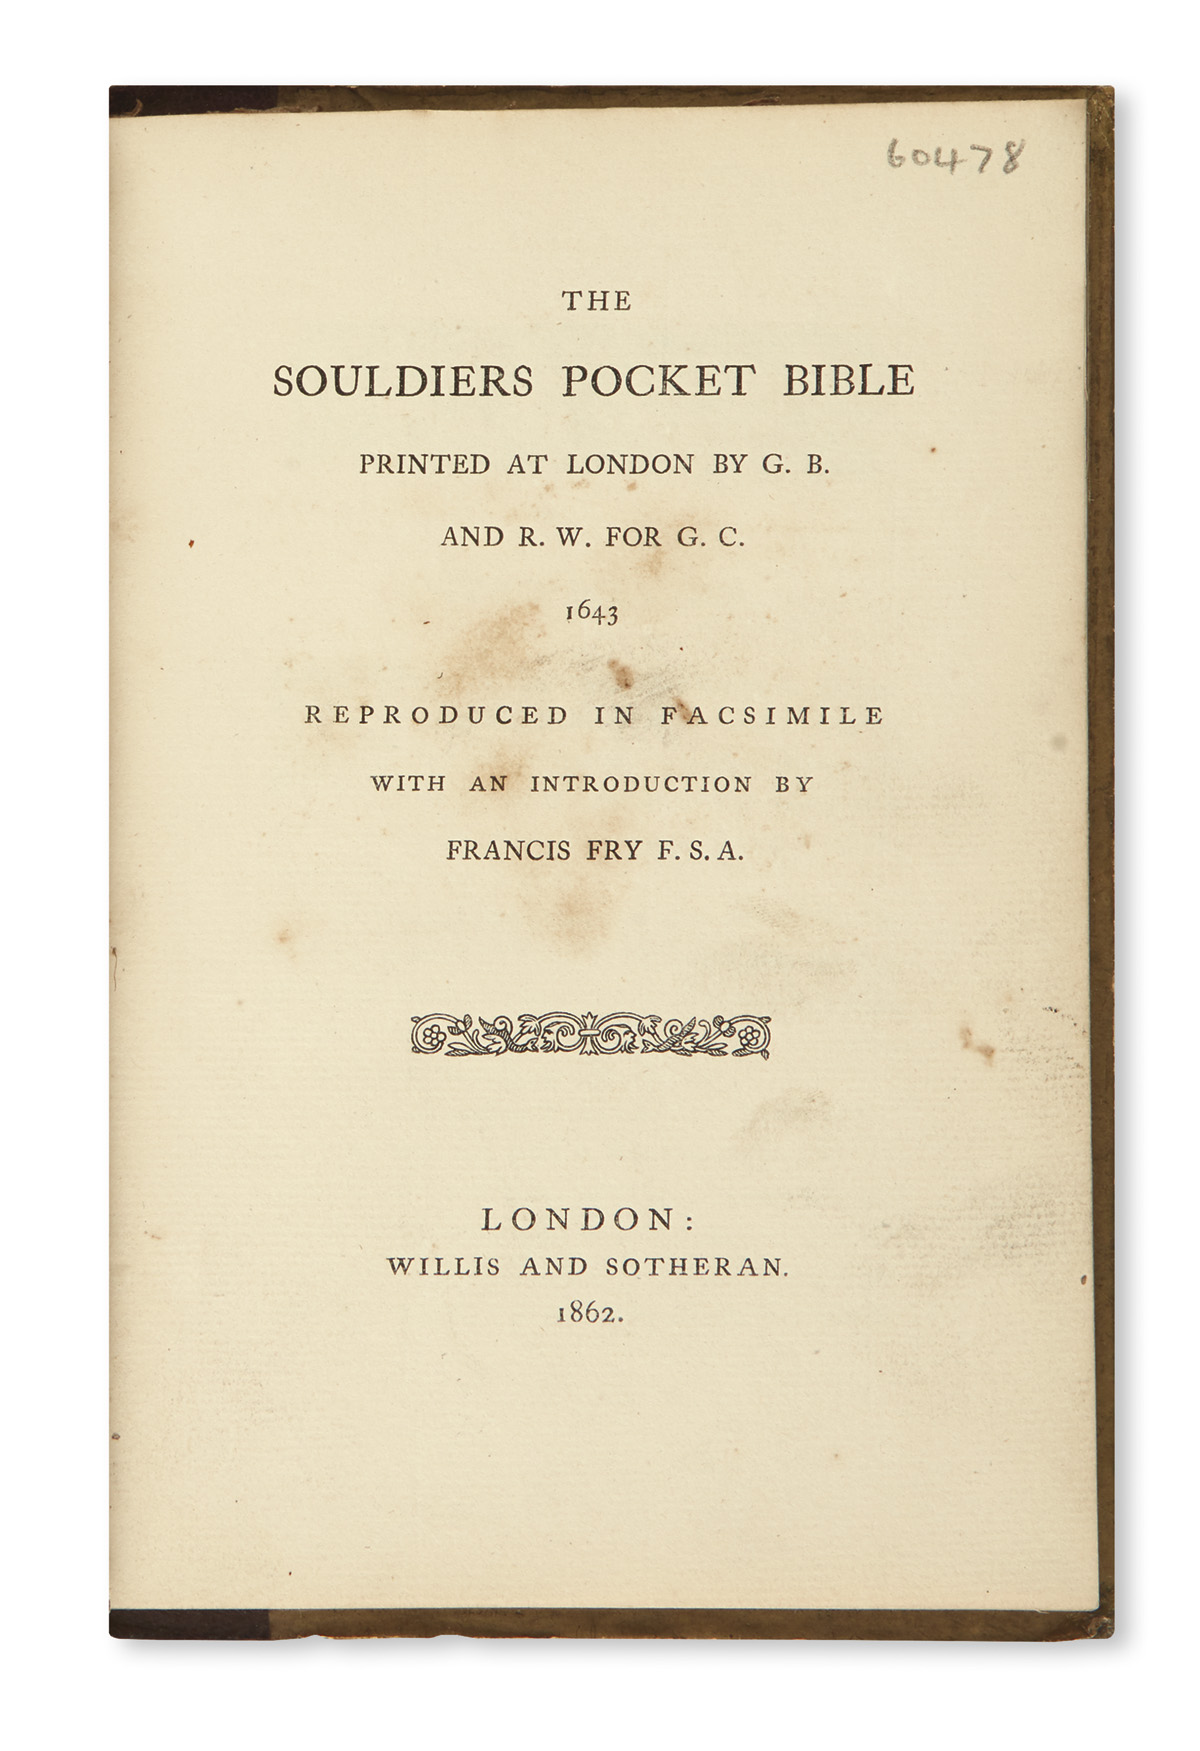 BIBLE-IN-ENGLISH--The-Souldiers-Pocket-Bible-printed-at-Lond